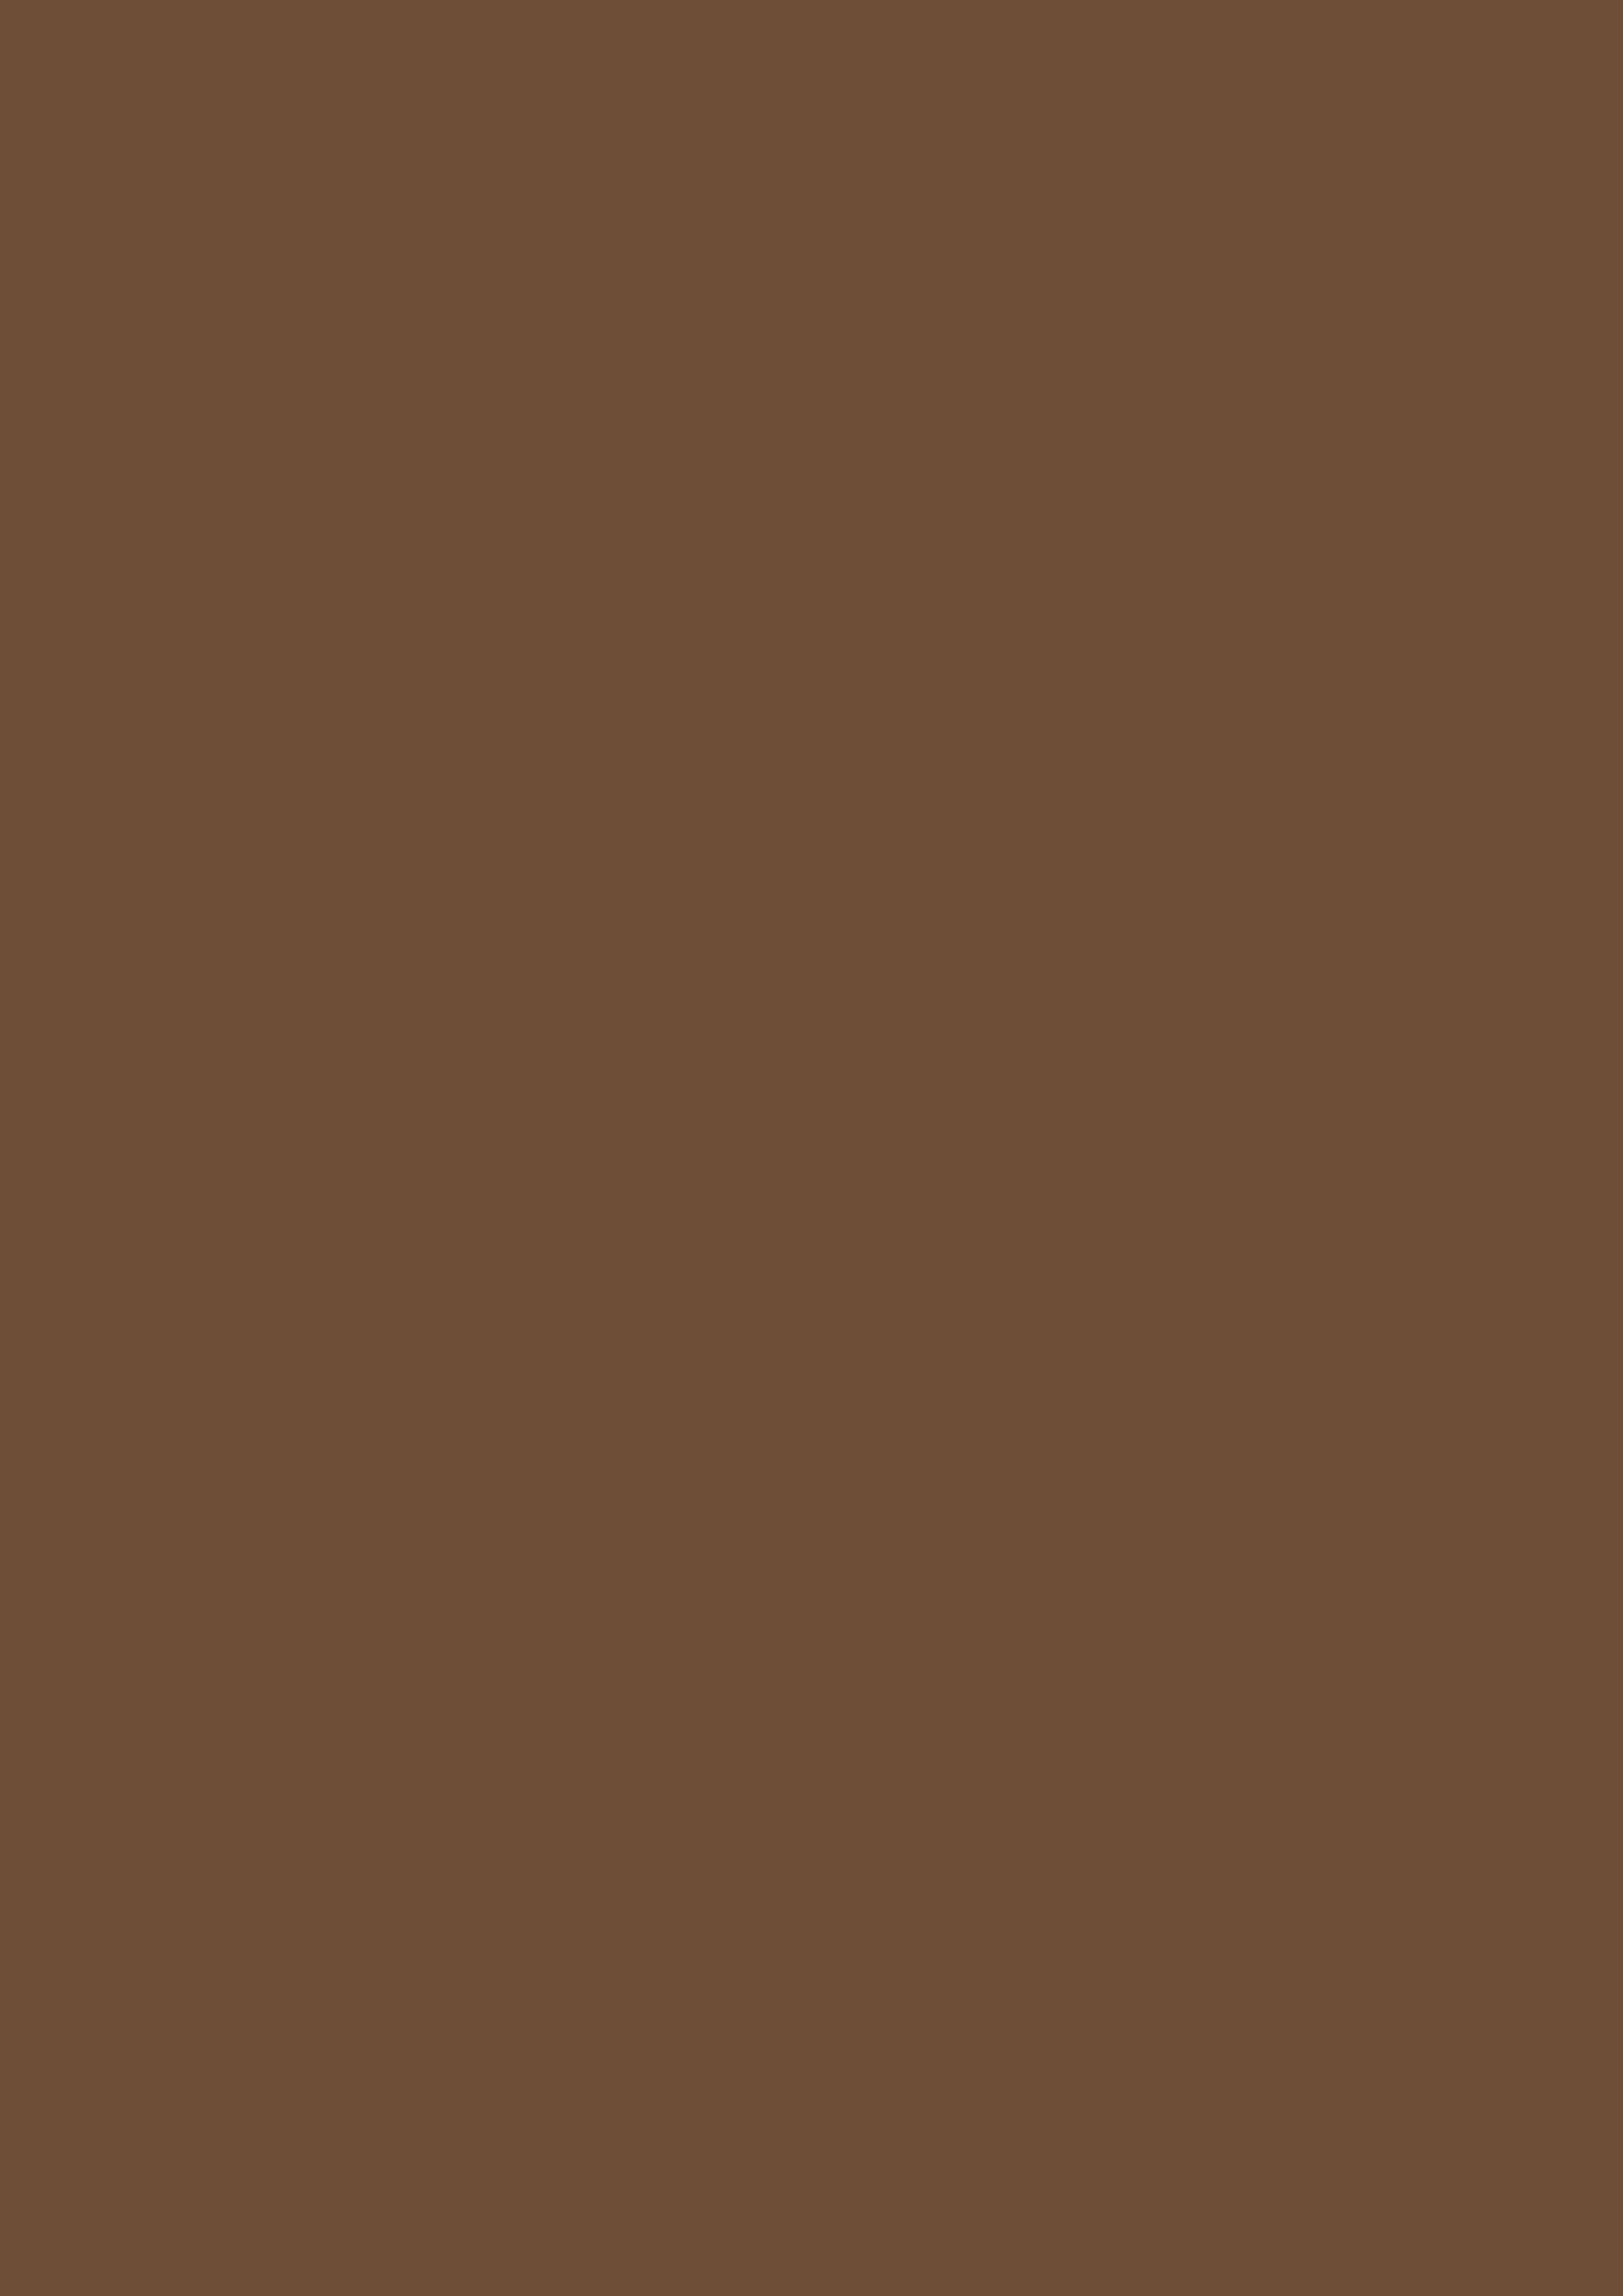 2480x3508 Coffee Solid Color Background